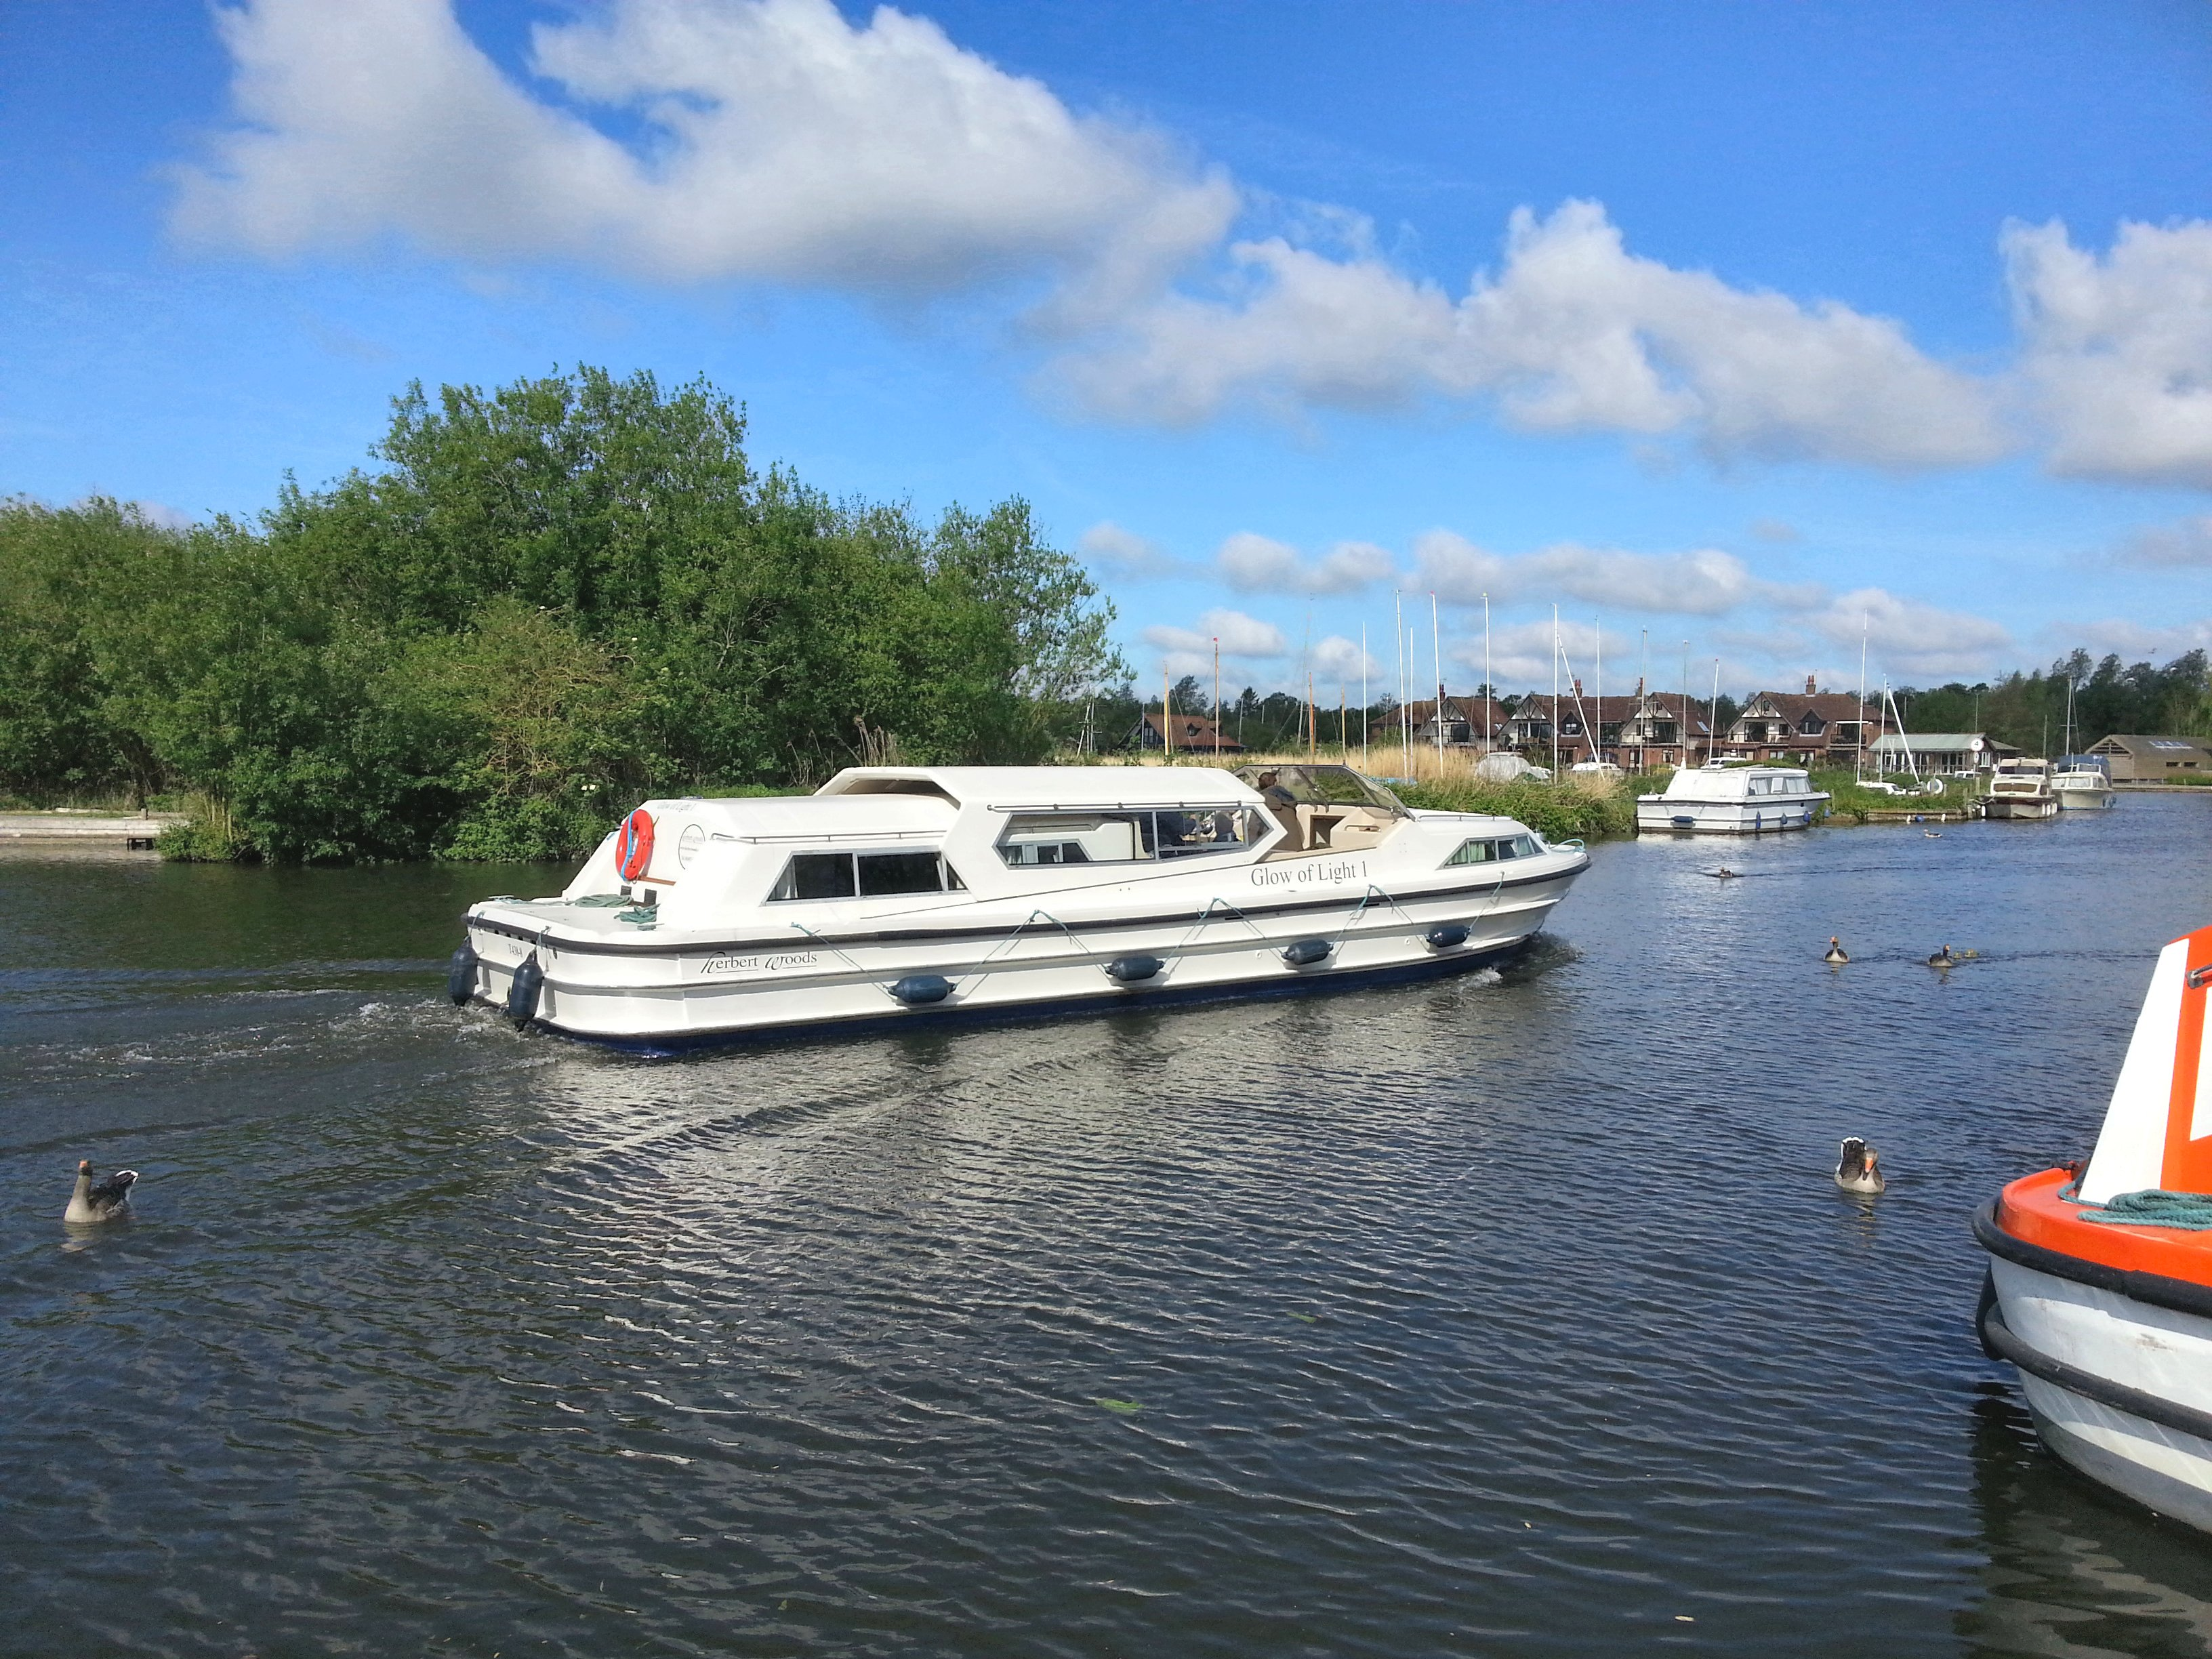 Norfolk Broads during the Easter Holidays